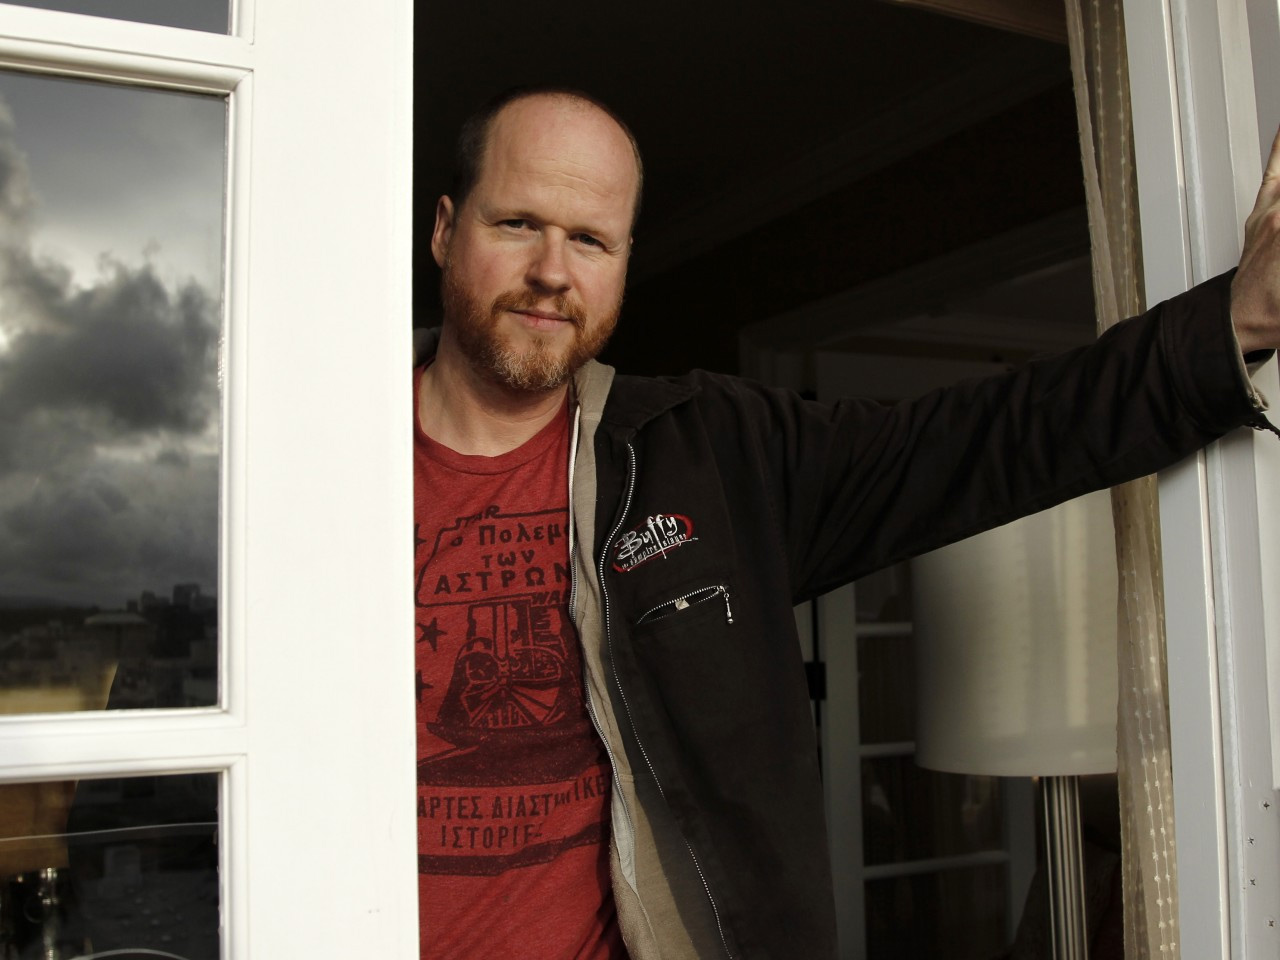 joss-whedon-wants-to-make-original-content-when-hes-done-with-the-avengers-header.jpg